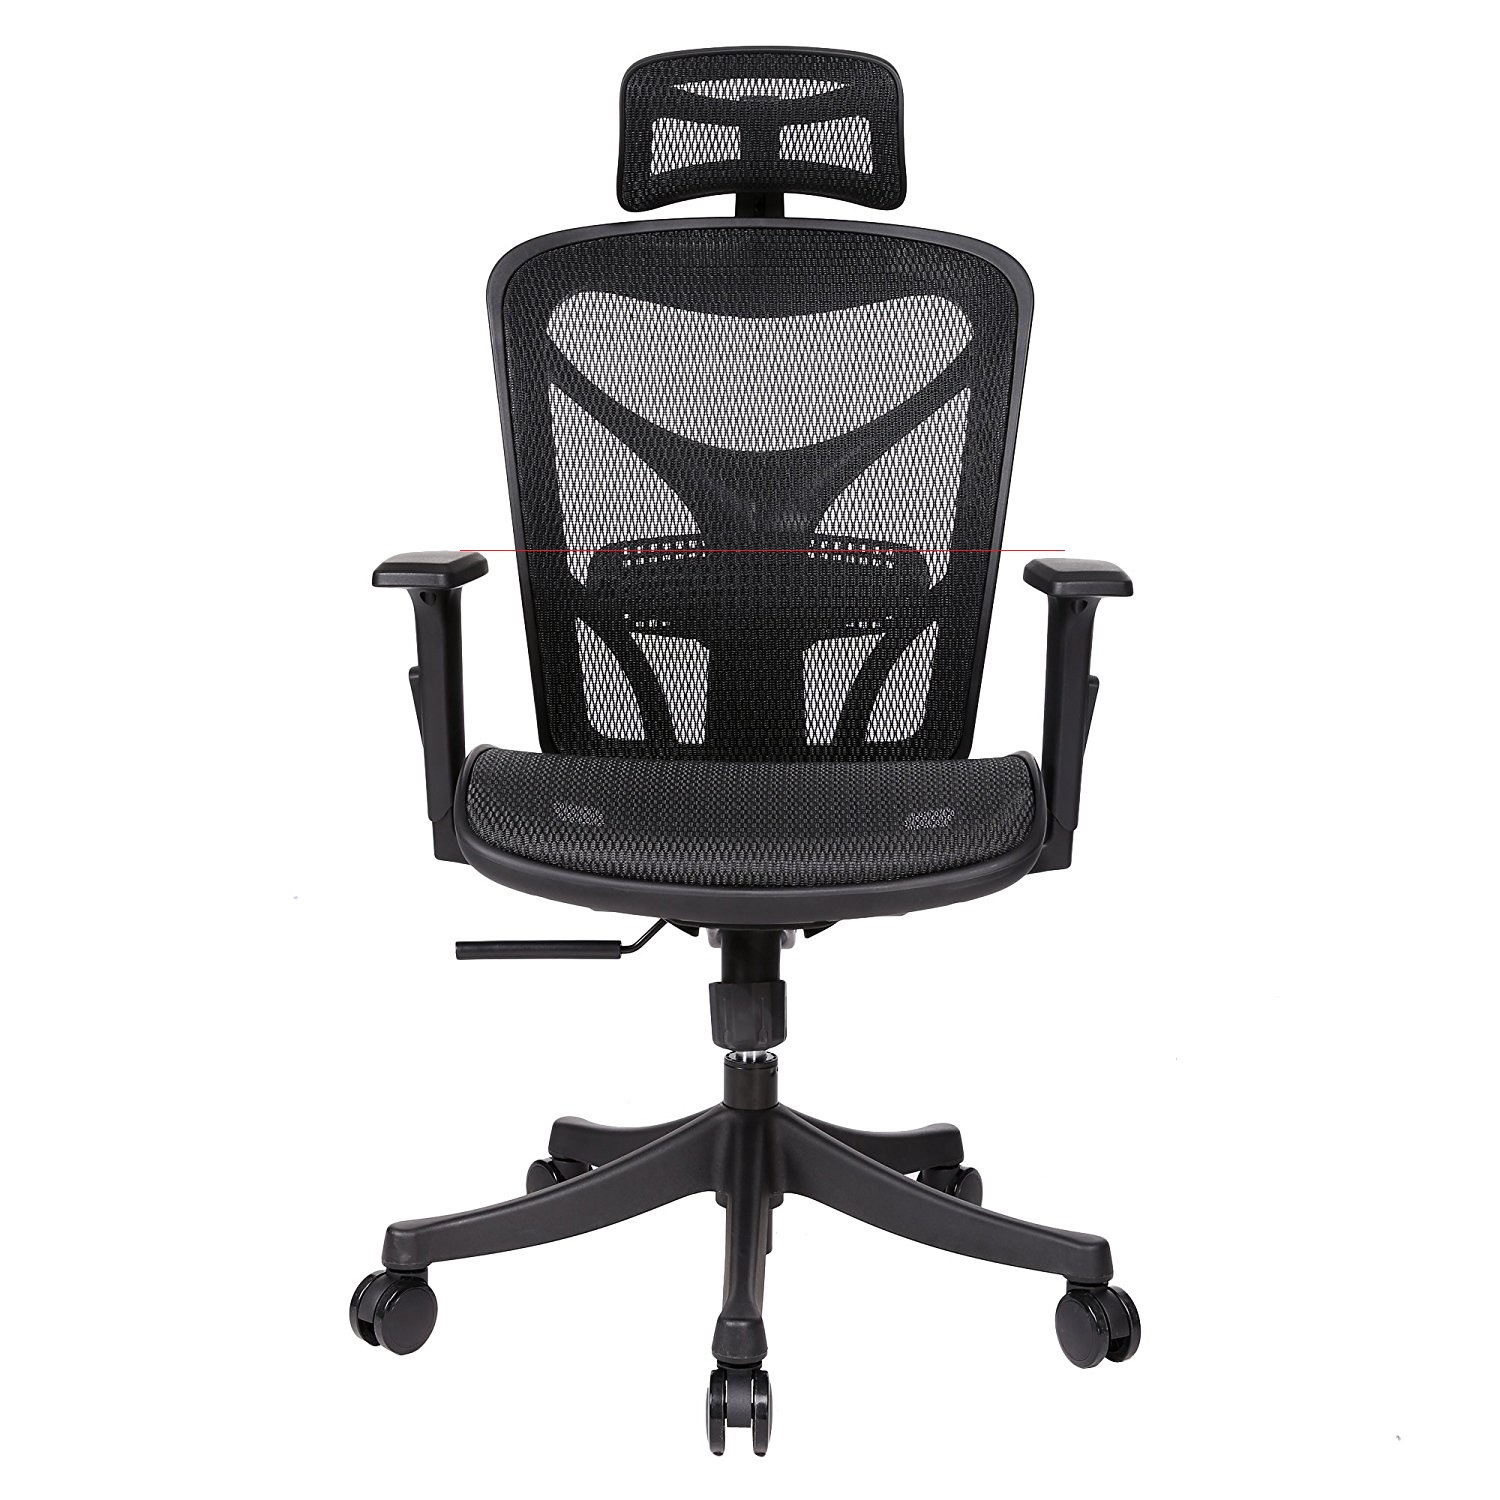 Even On Amazon Iu0027ve Found 2 Chair At Lowest Arm Height With This Problem.